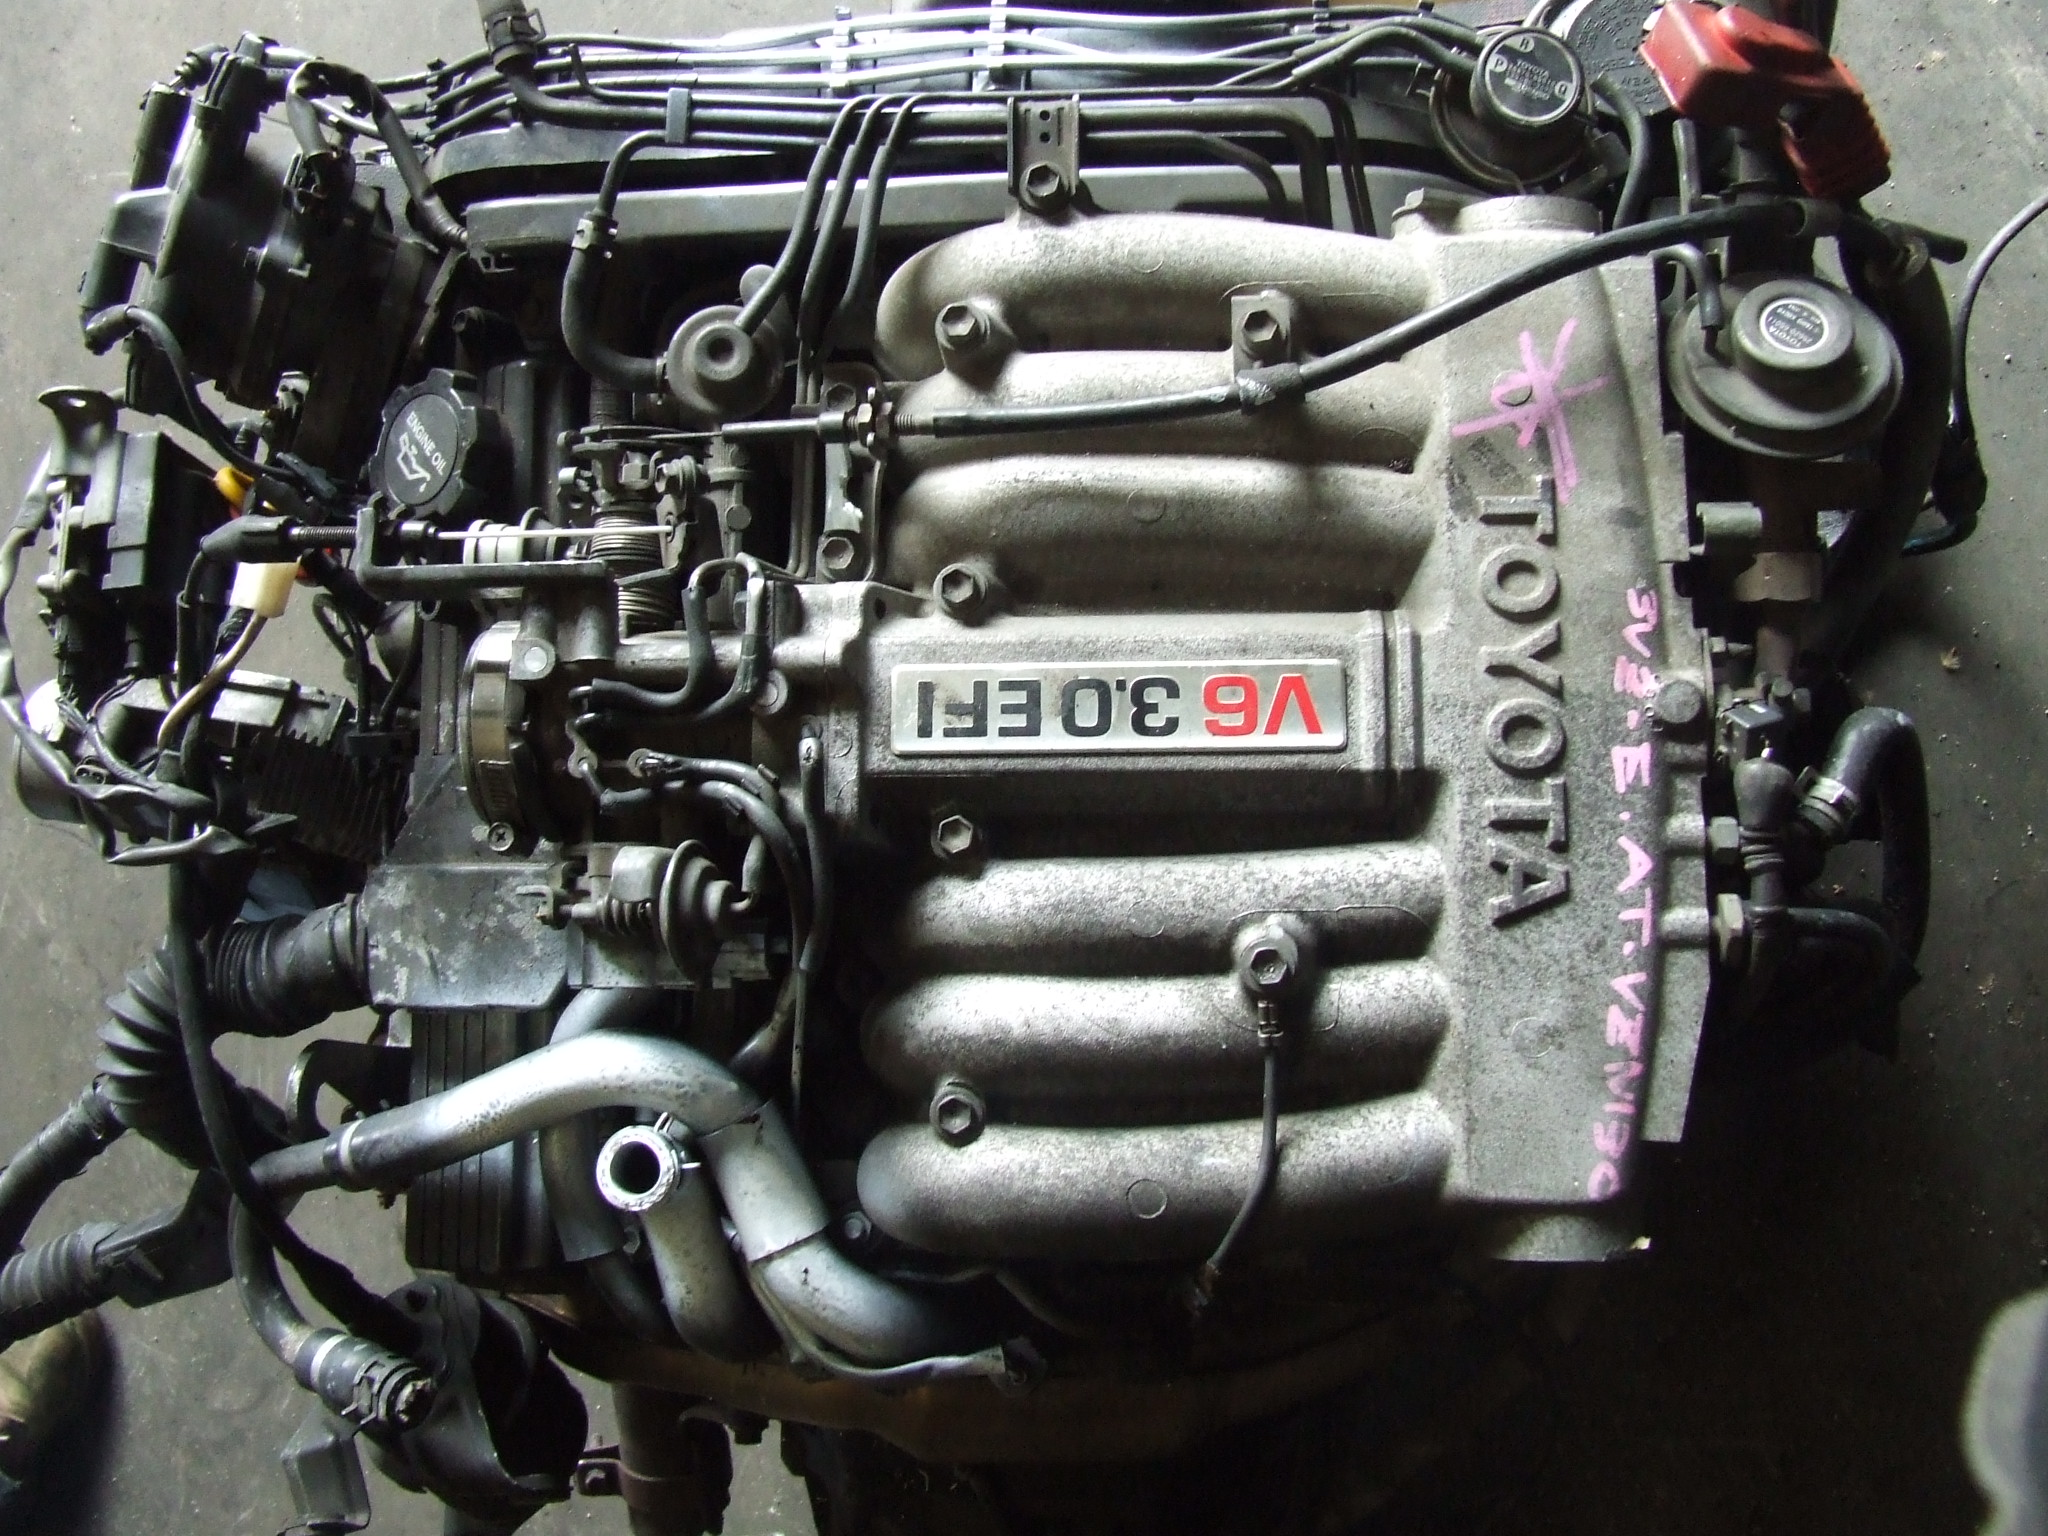 toyota 4runner engines used toyota 4runner engine rh alltoyotaengines com toyota engine serial number toyota engine serial number